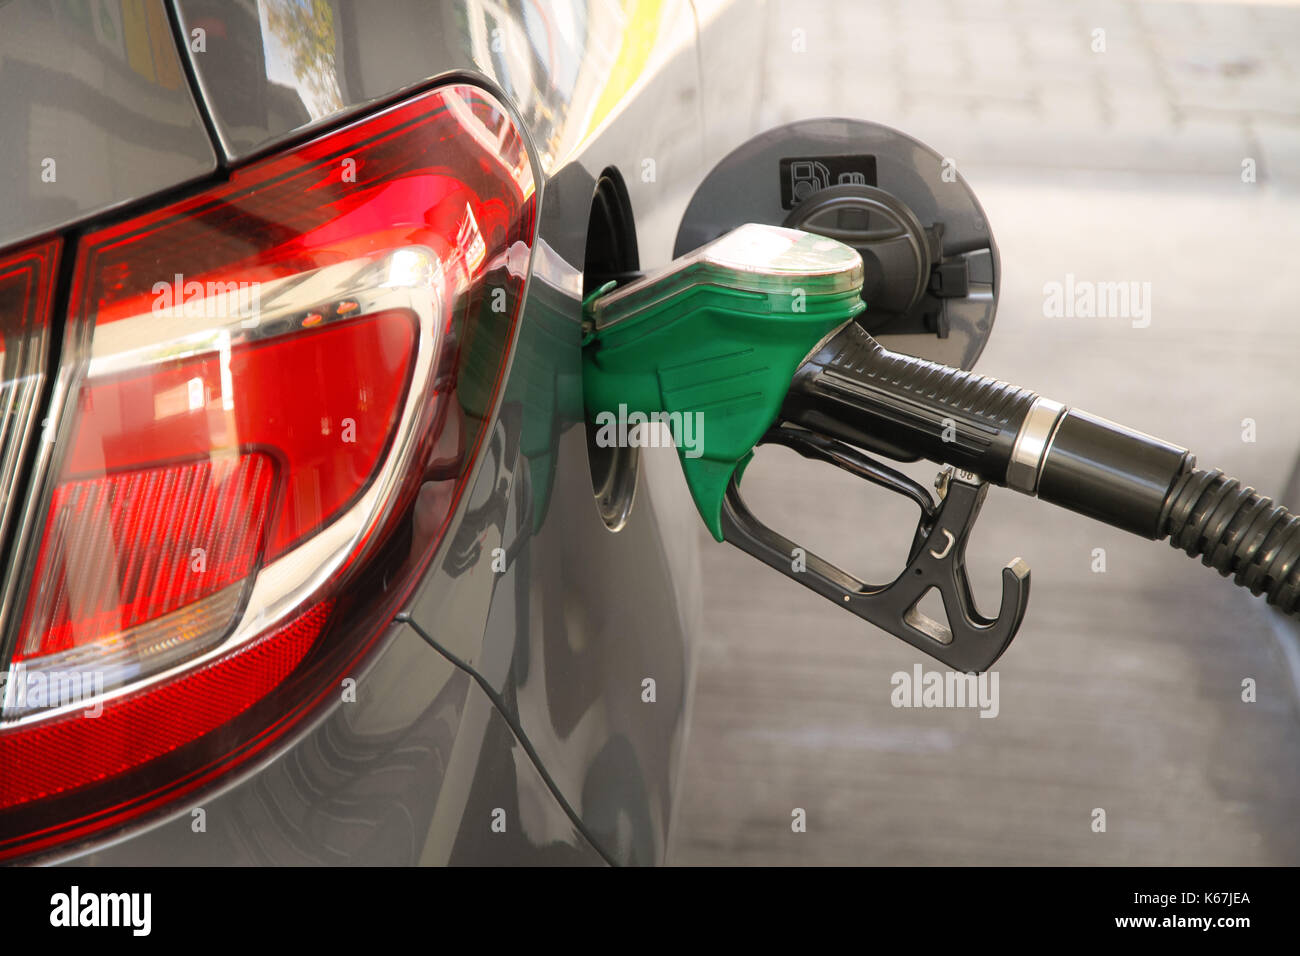 Fuels Stock Photos & Fuels Stock Images - Alamy